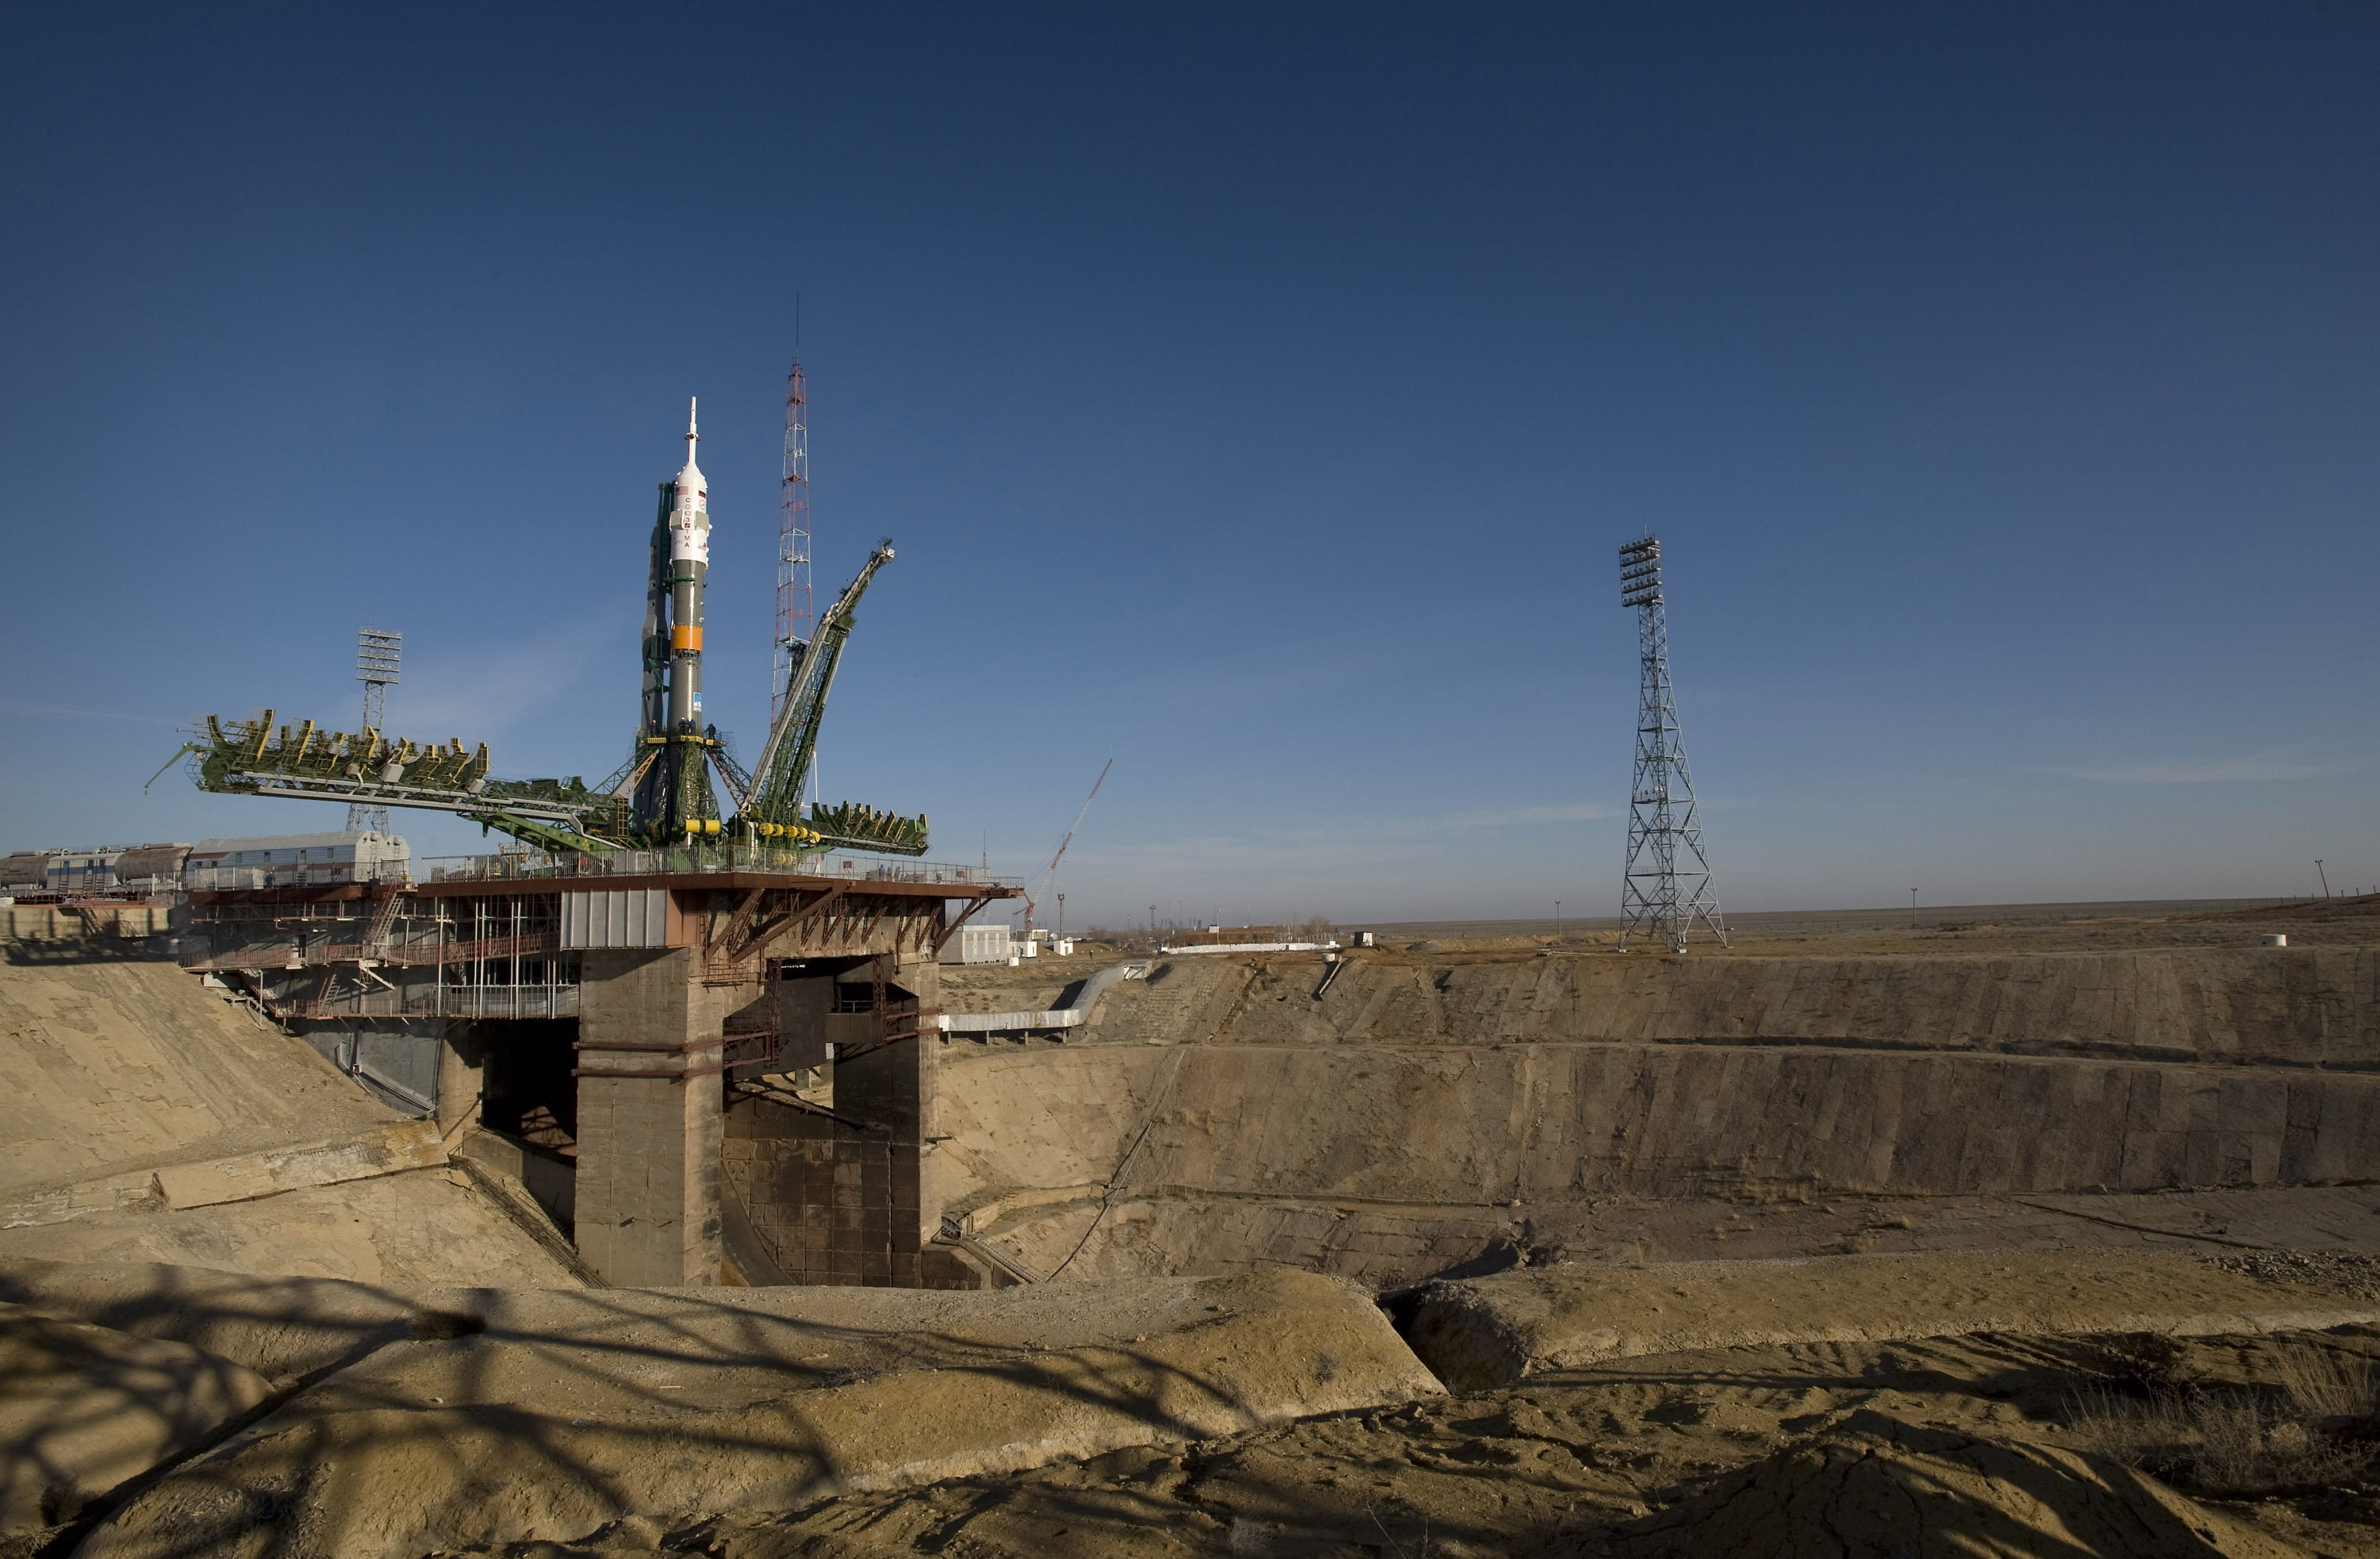 A Soyuz rocket is erected into position at the Baikonur Cosmodrome's Pad 1/5 (Gagarin's Start) on 24 March 2009. The rocket launched the crew of Expedition 19 and a spaceflight participant on 26 March 2009.